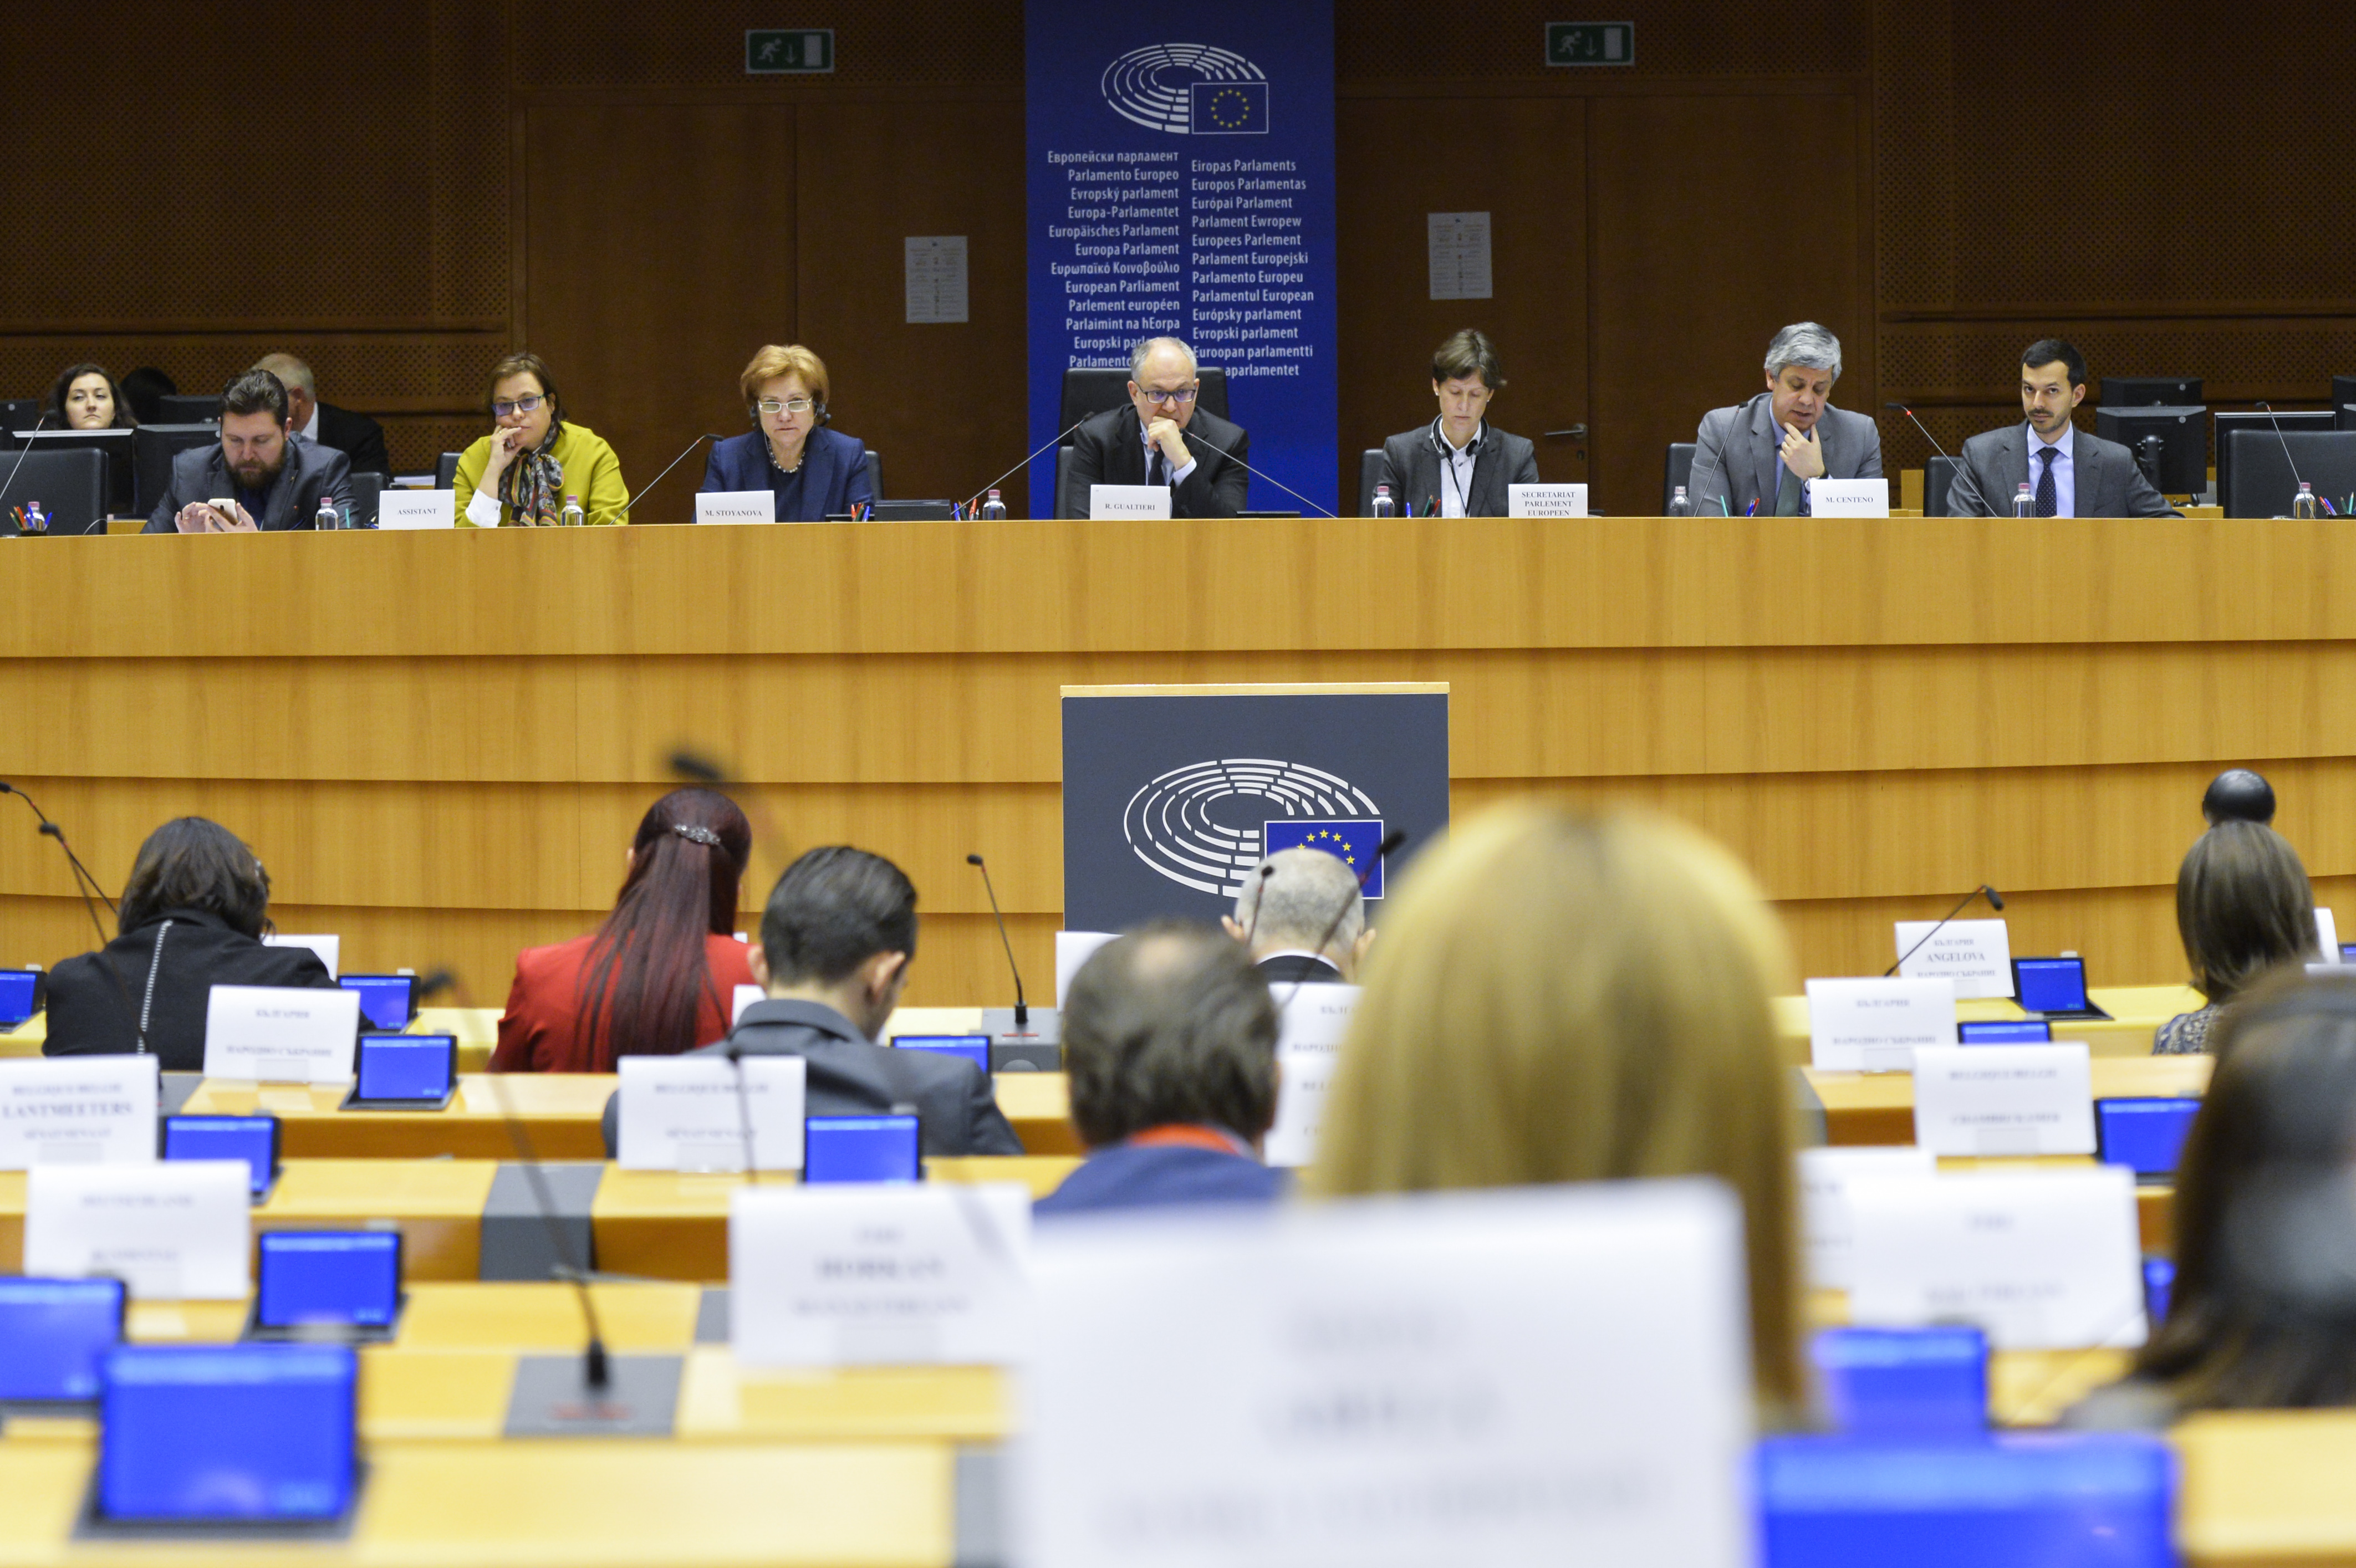 European Parliamentary Week 2018 - Concluding plenary session